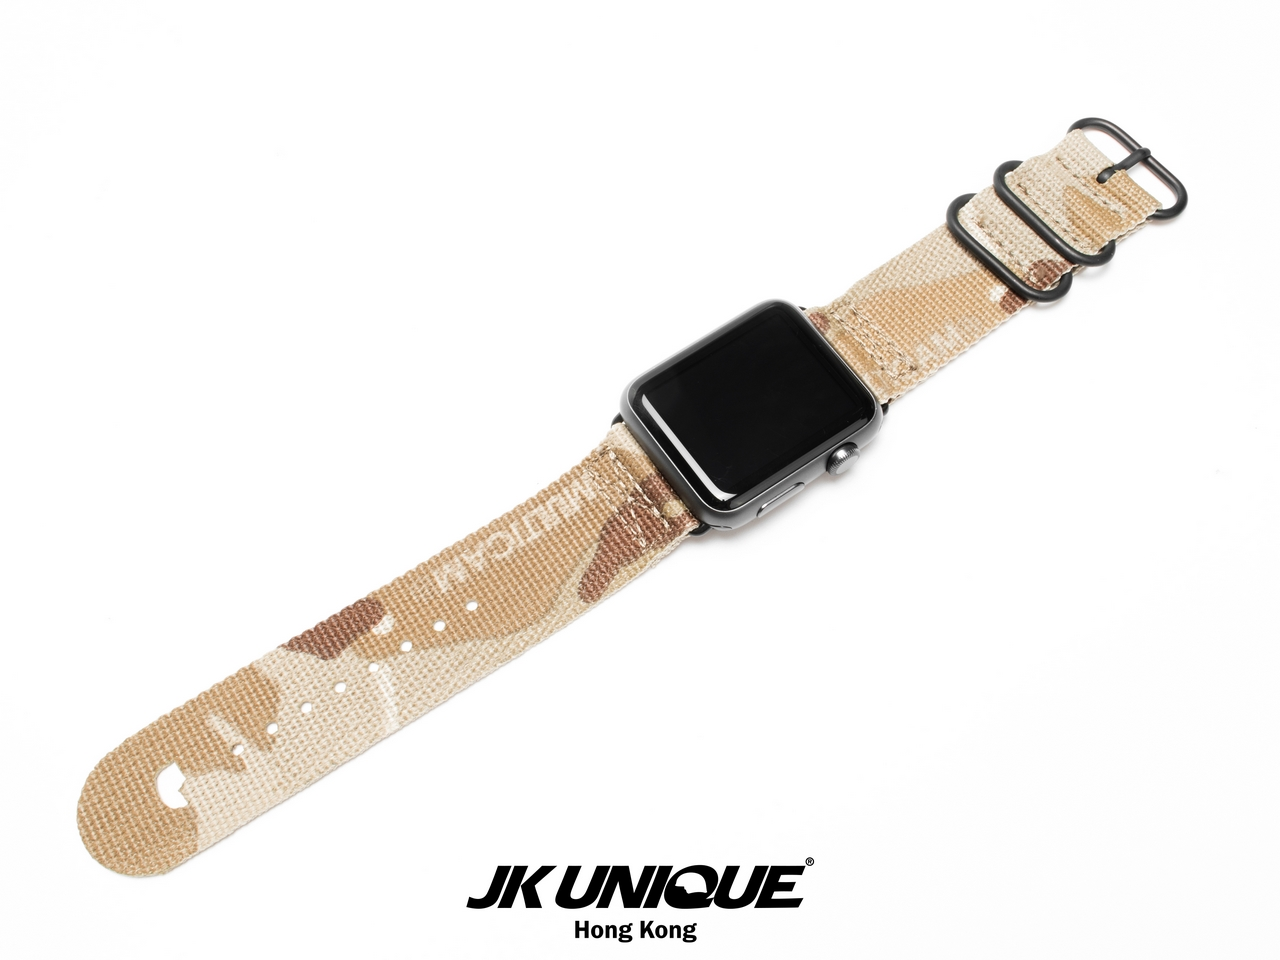 JK-UNIQUE-CAMO-NATO-Apple-Watch-Strap-42mm-BK-Multicam-Arid-3 (1280).jpg